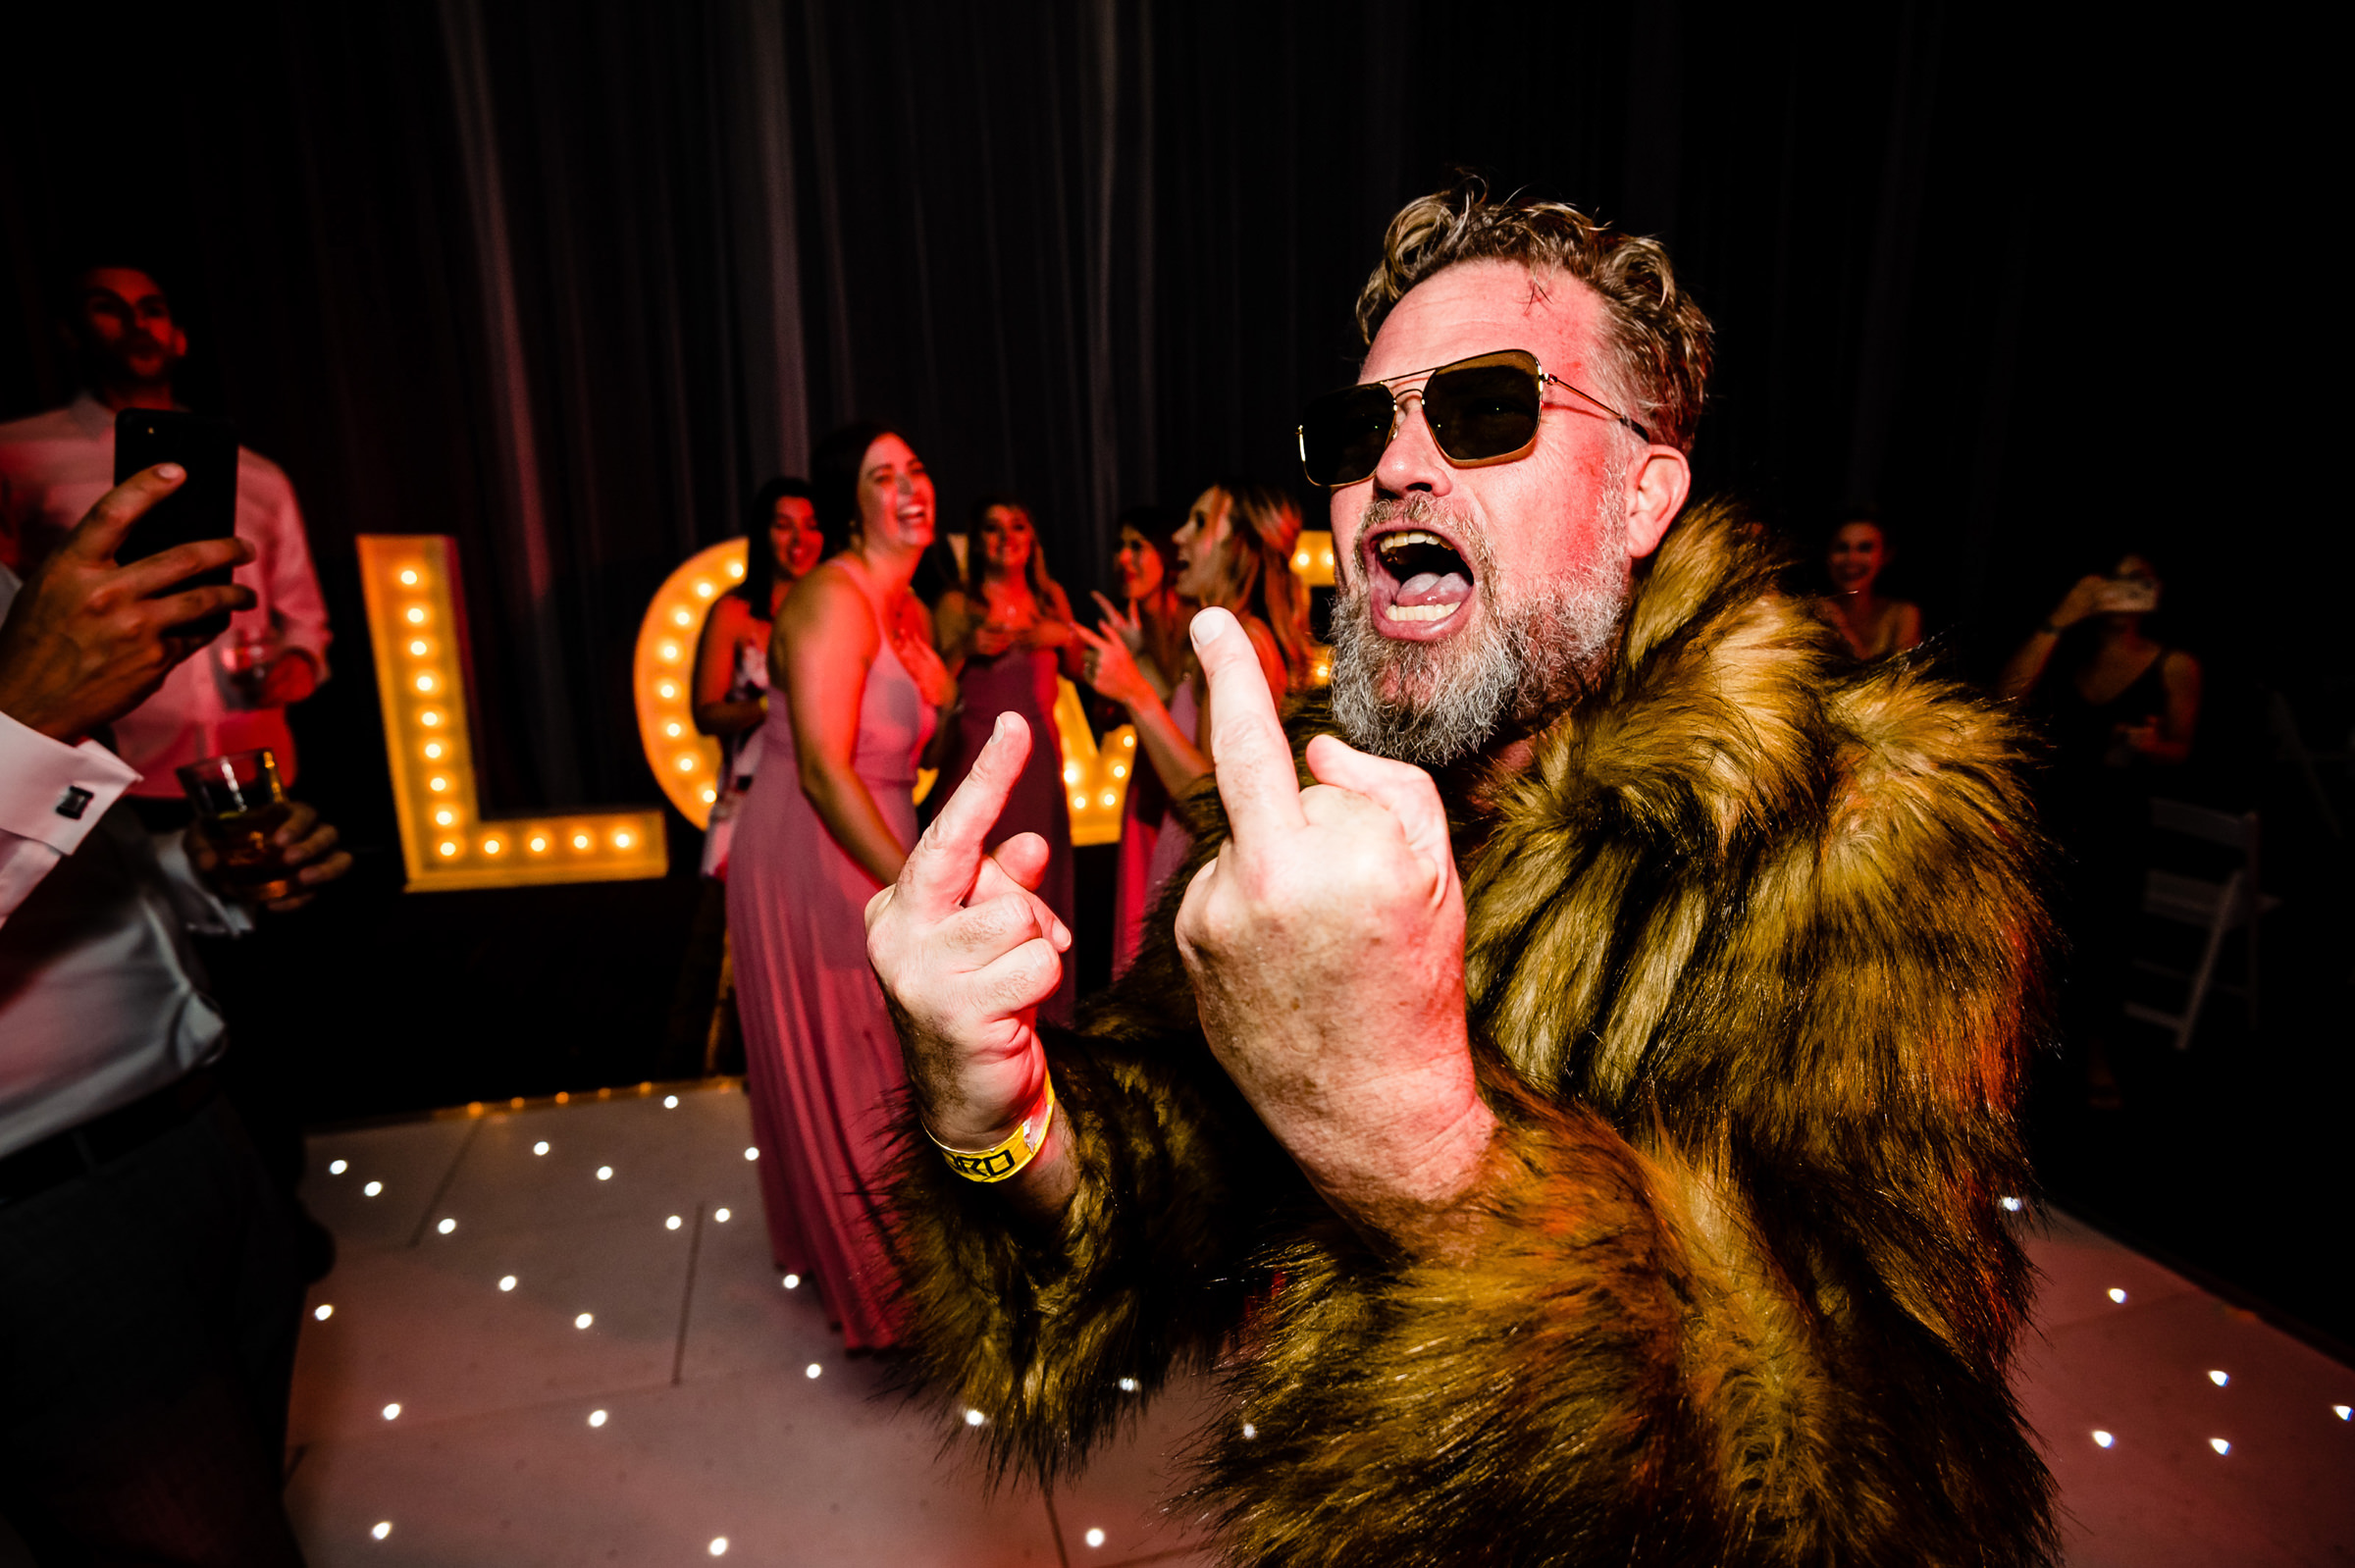 Party guest in fur coat with two middle fingers up - photo by Moore Photography